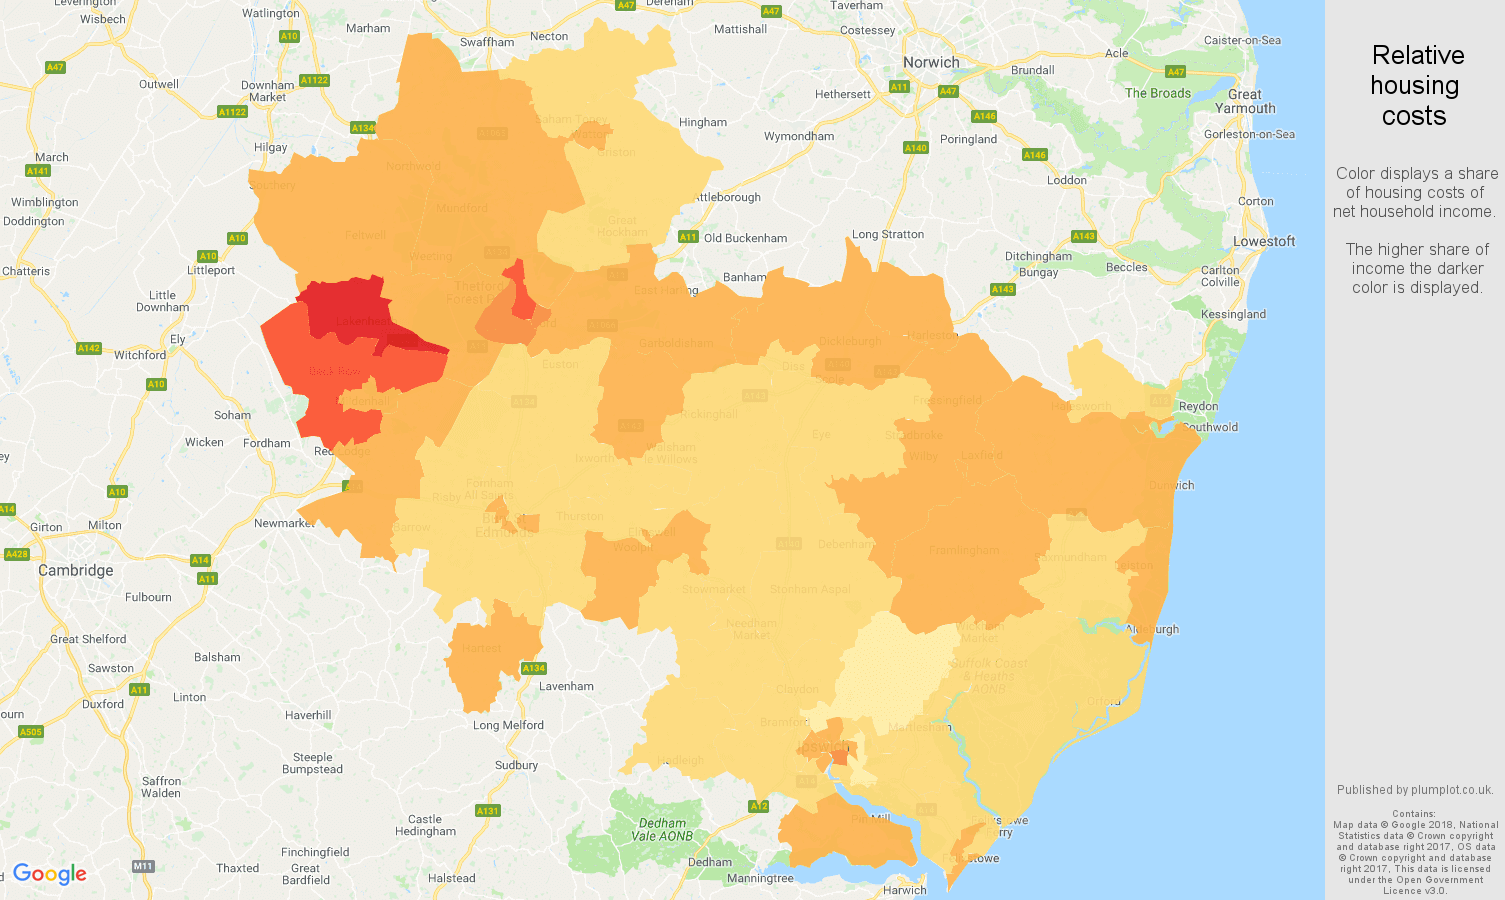 Ipswich relative housing costs map